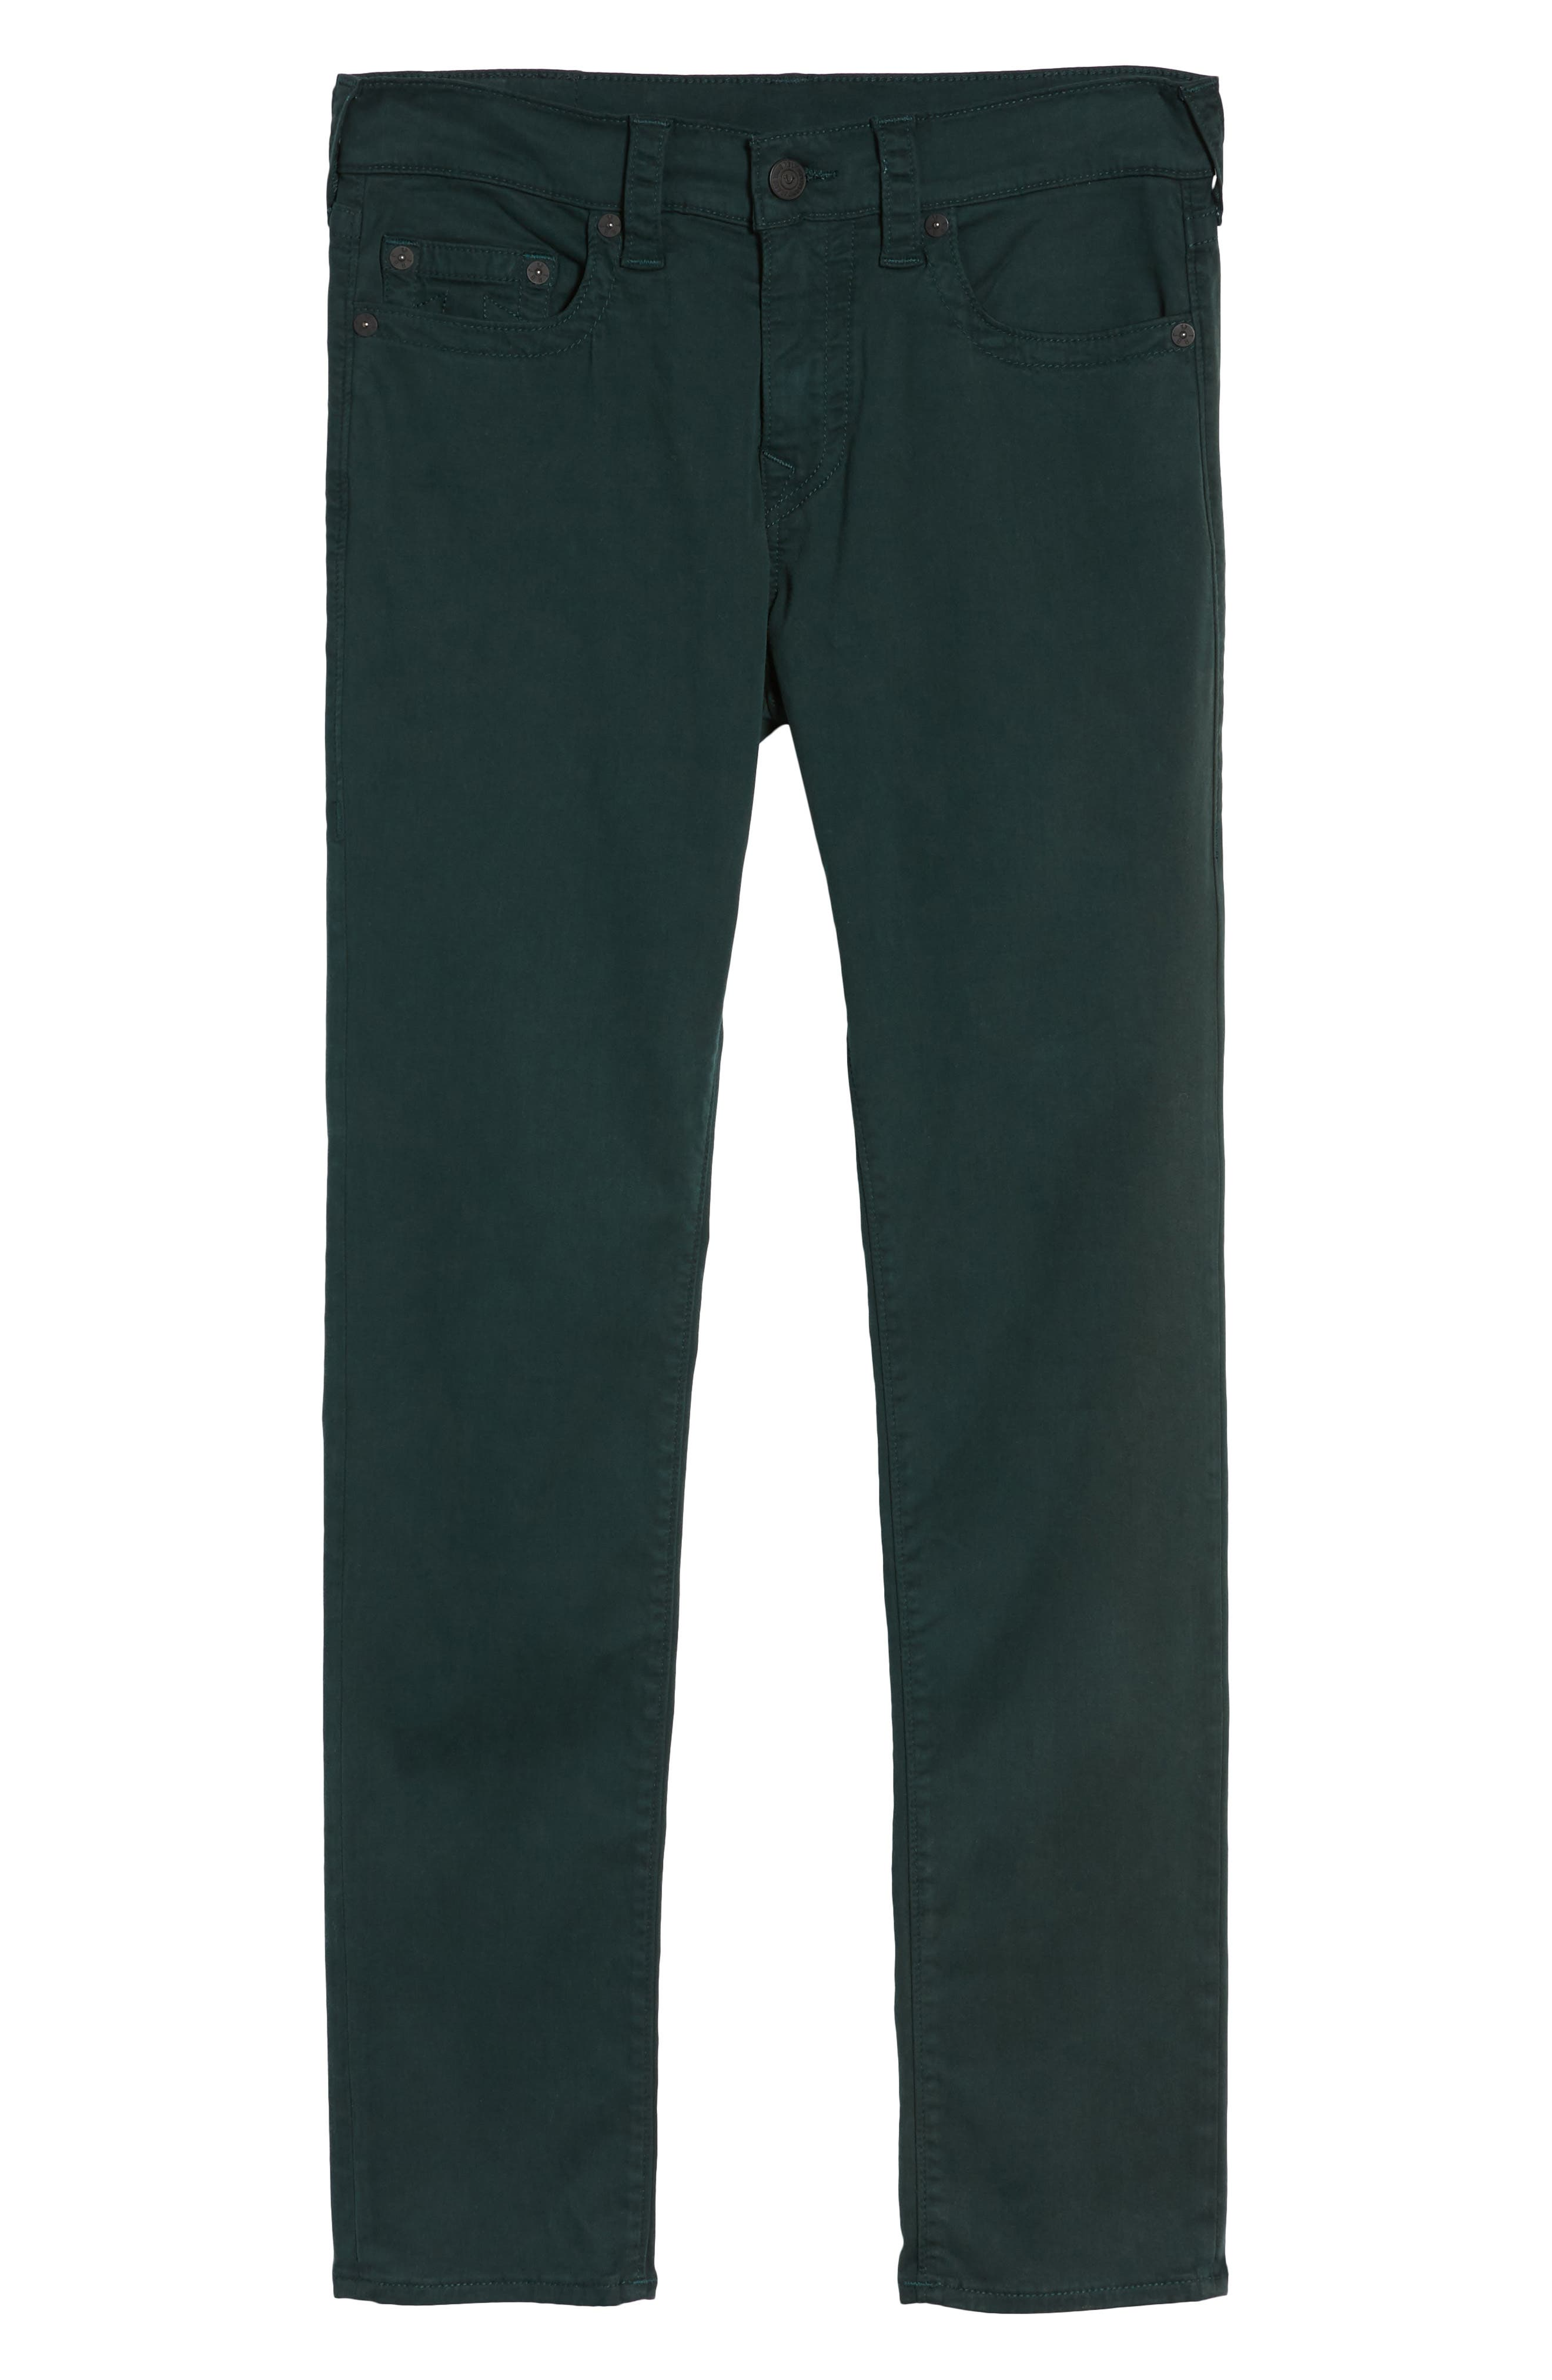 Rocco Skinny Fit Jeans,                             Alternate thumbnail 6, color,                             Hunter Green